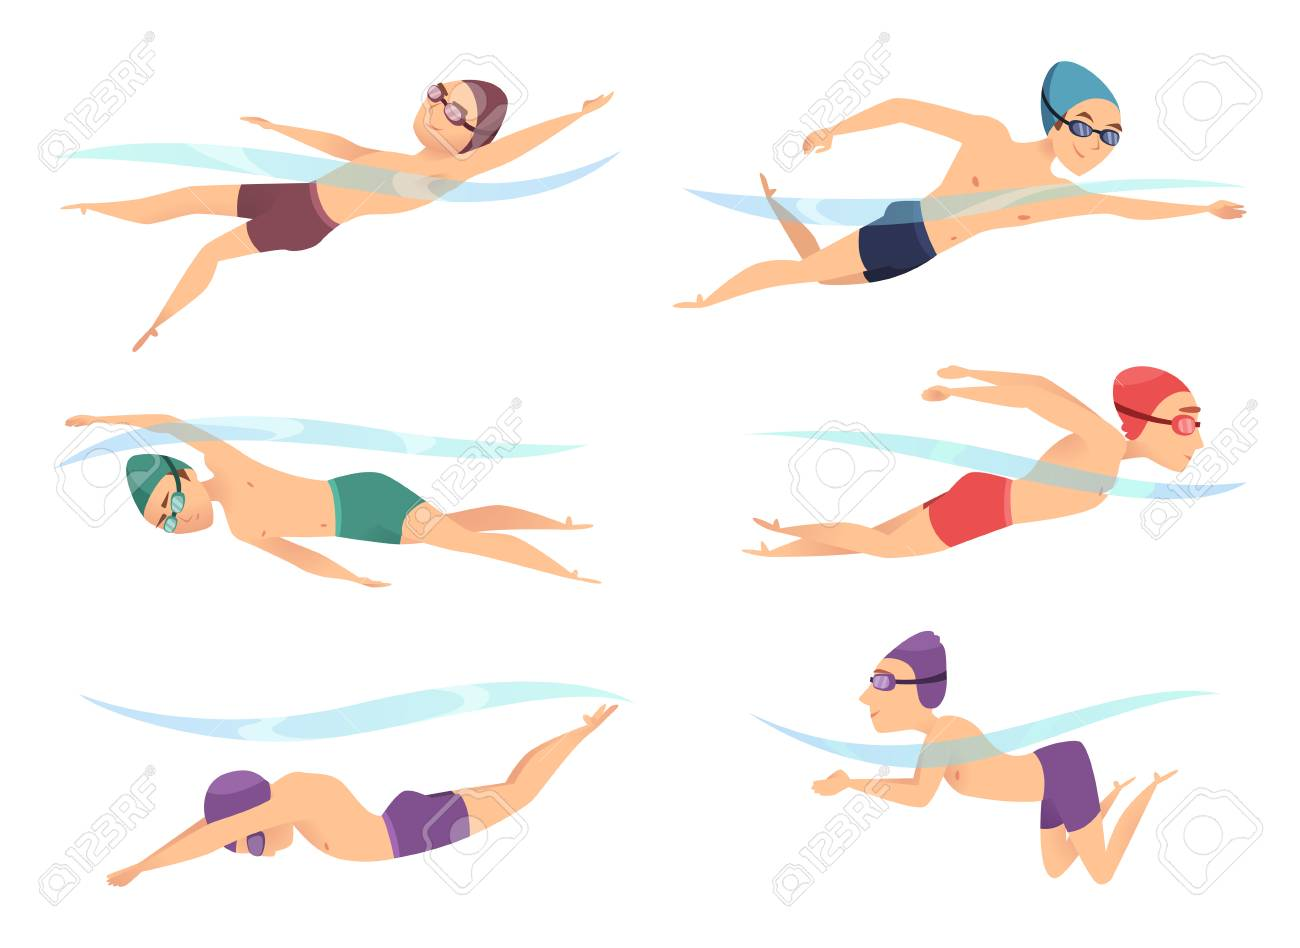 Swimmers at various poses. Cartoon sport characters in poll action poses crawl, breaststroke and butterfly, vector illustration - 111653483